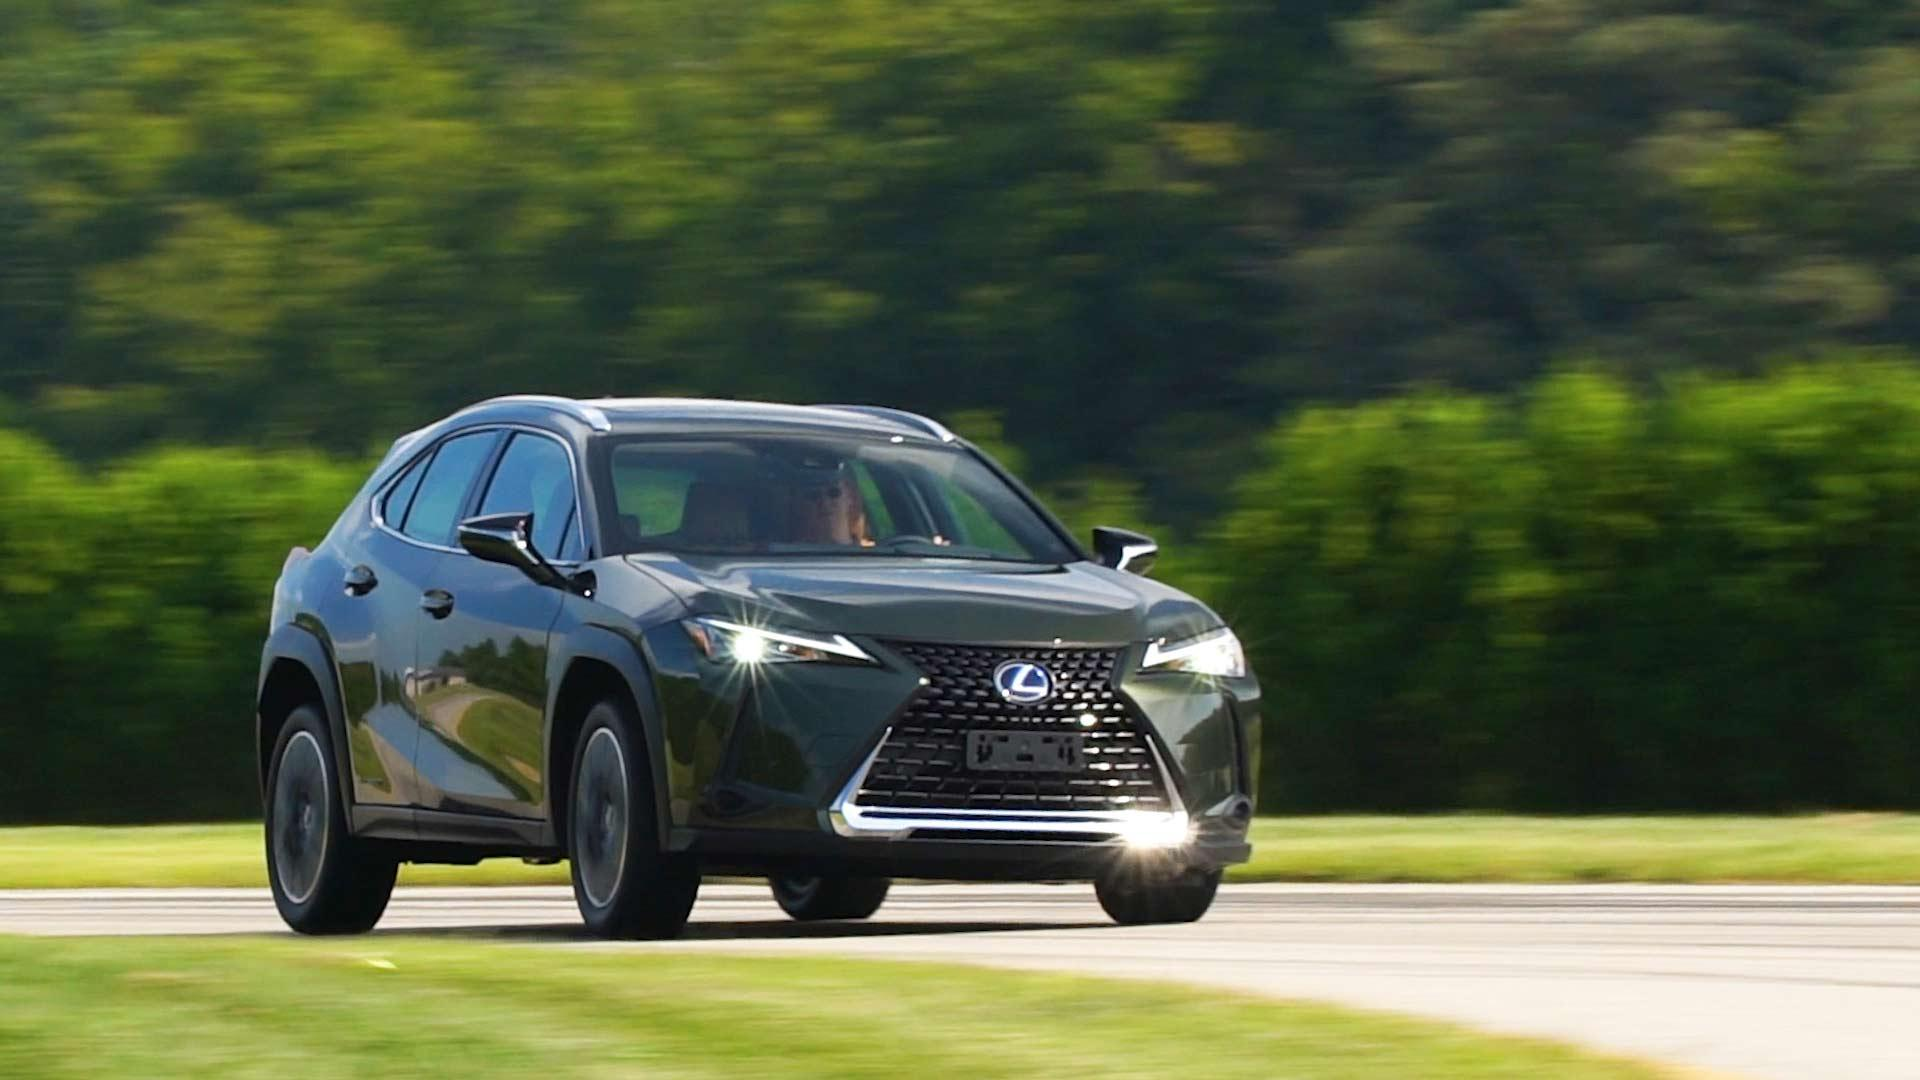 2019 Lexus UX Reviews, Ratings, Prices - Consumer Reports